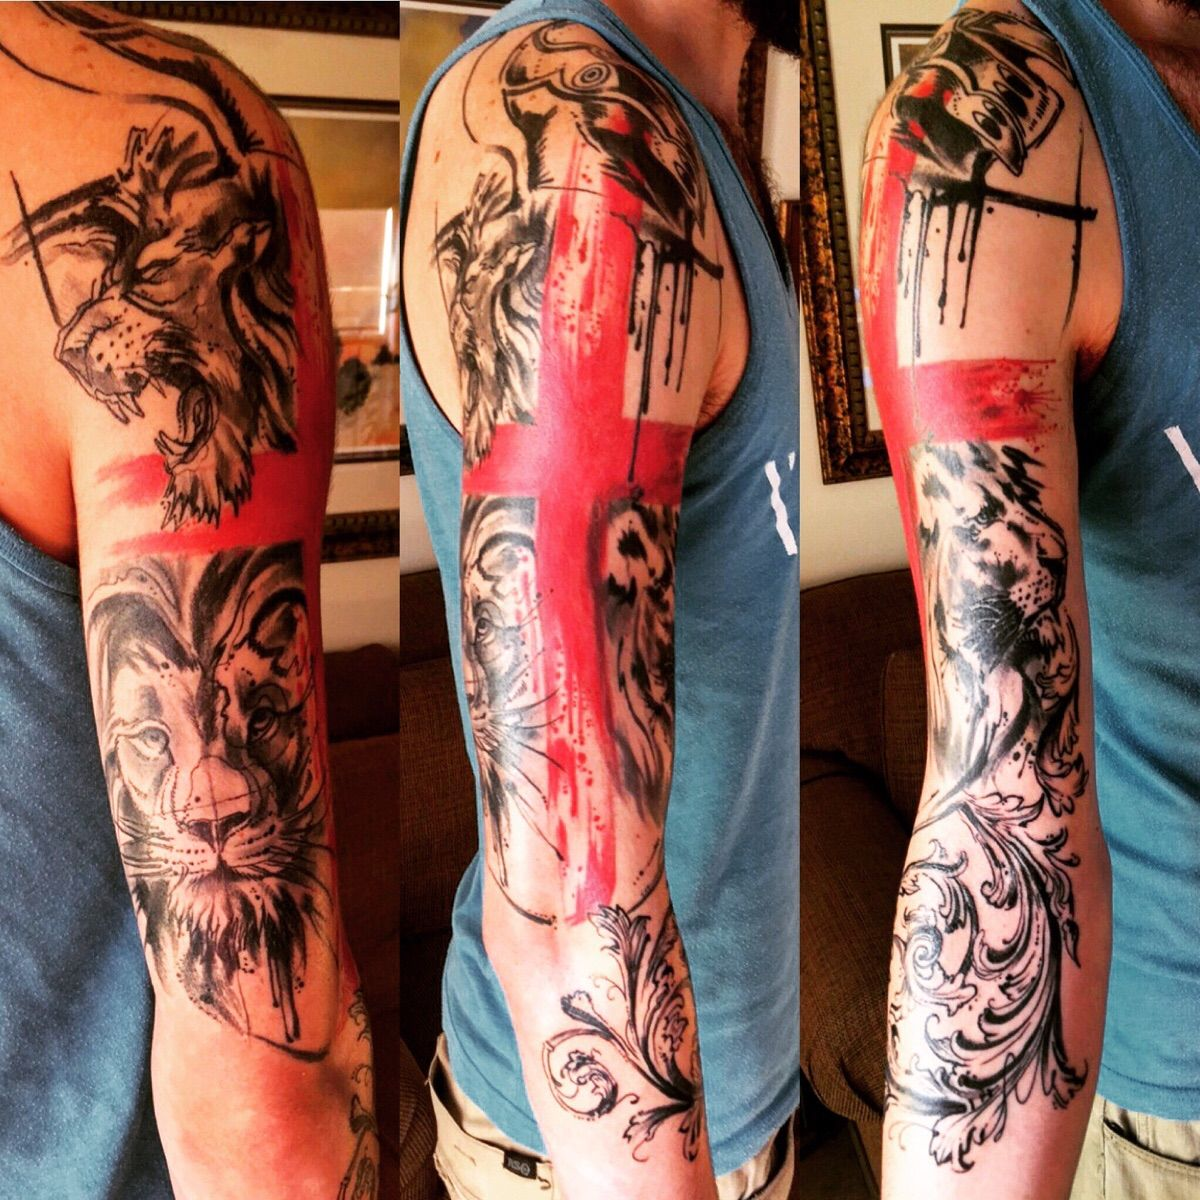 My abstract family crest sleeve, so far. Done by Johnny Mac at Tinta Cantina in Albuquerque, NM. That's fucking sick  Trash polka is the style.  Man, I'm pretty pedantic, but you take the cake. Thi...